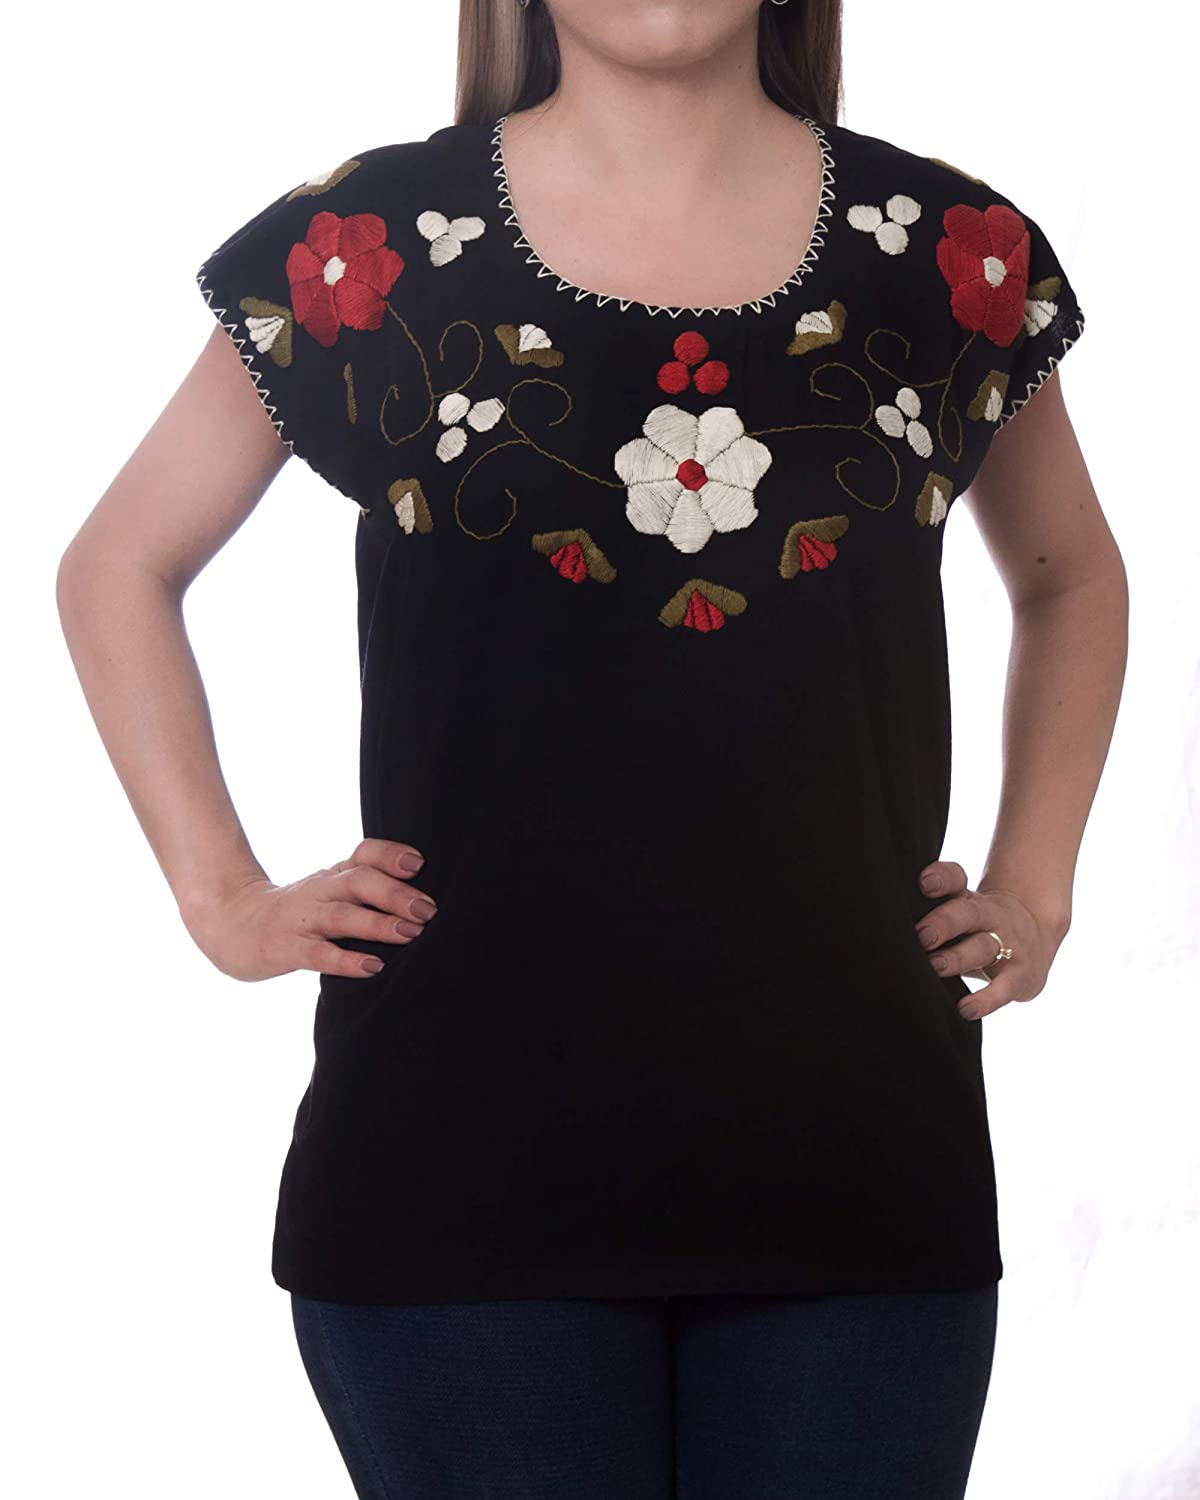 216fae4d2ed ... blouse has a traditional Mexican design that will give you an authentic  look so you can look truly impressive. The floral tunic shirt is very  beautiful ...